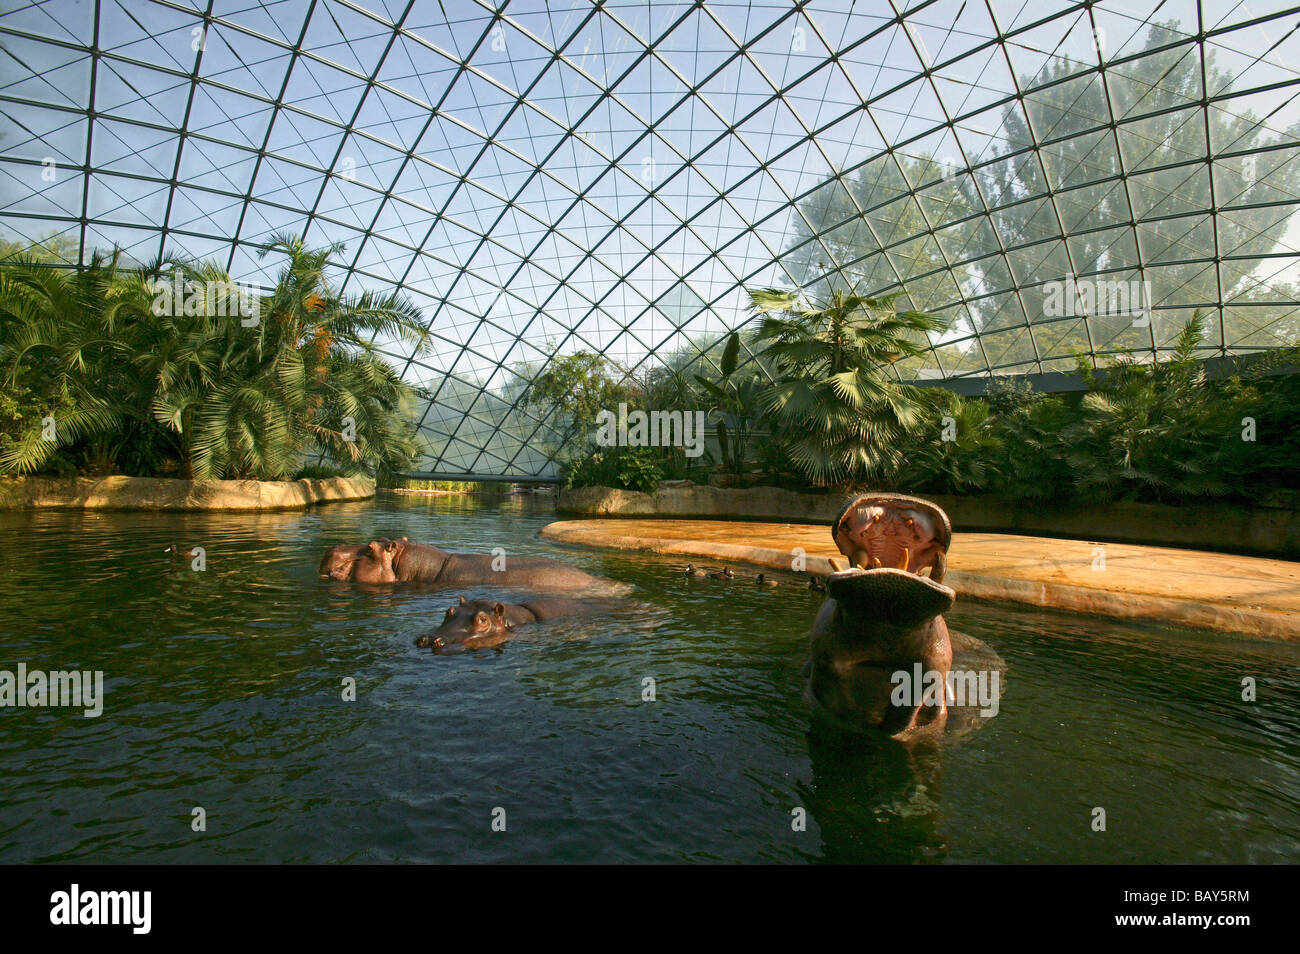 hippopotamus house berlin zoo berlin germany stock photo royalty free image 23954216 alamy. Black Bedroom Furniture Sets. Home Design Ideas